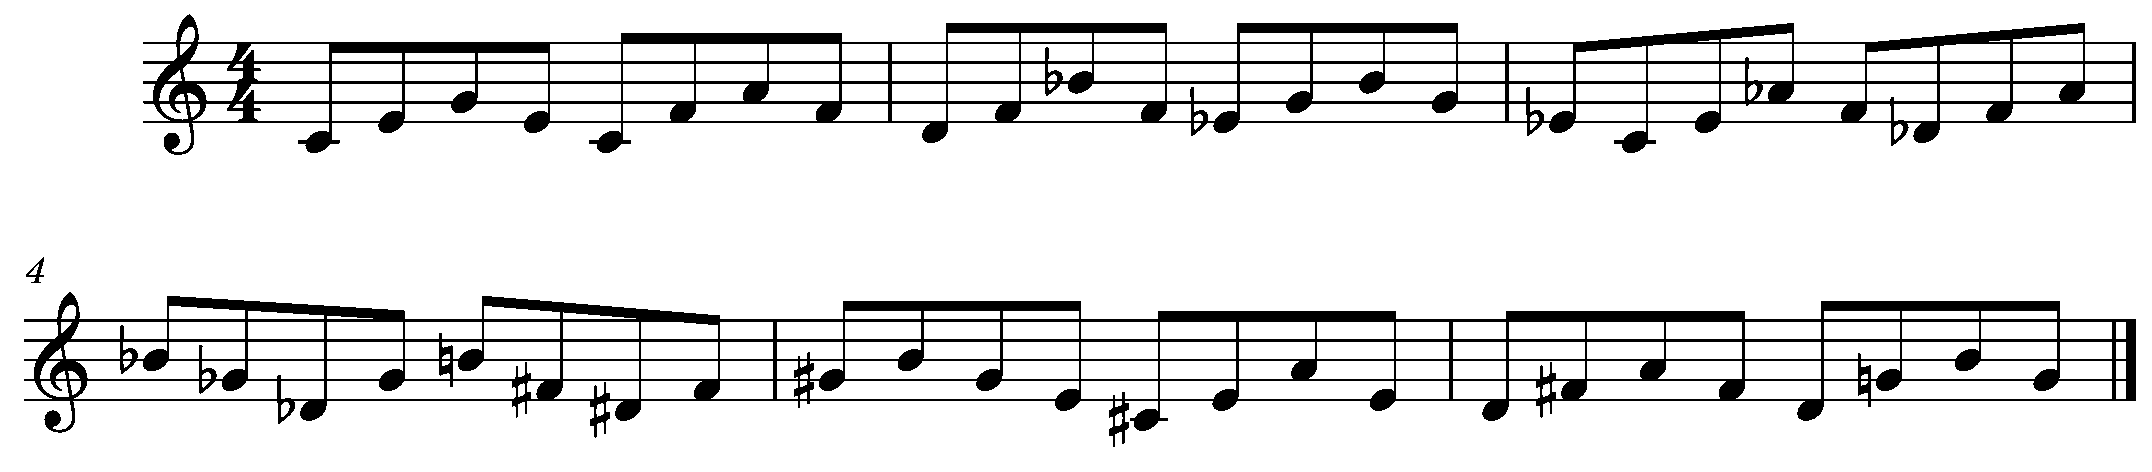 Ex. 1 Triads Within a Major 7th